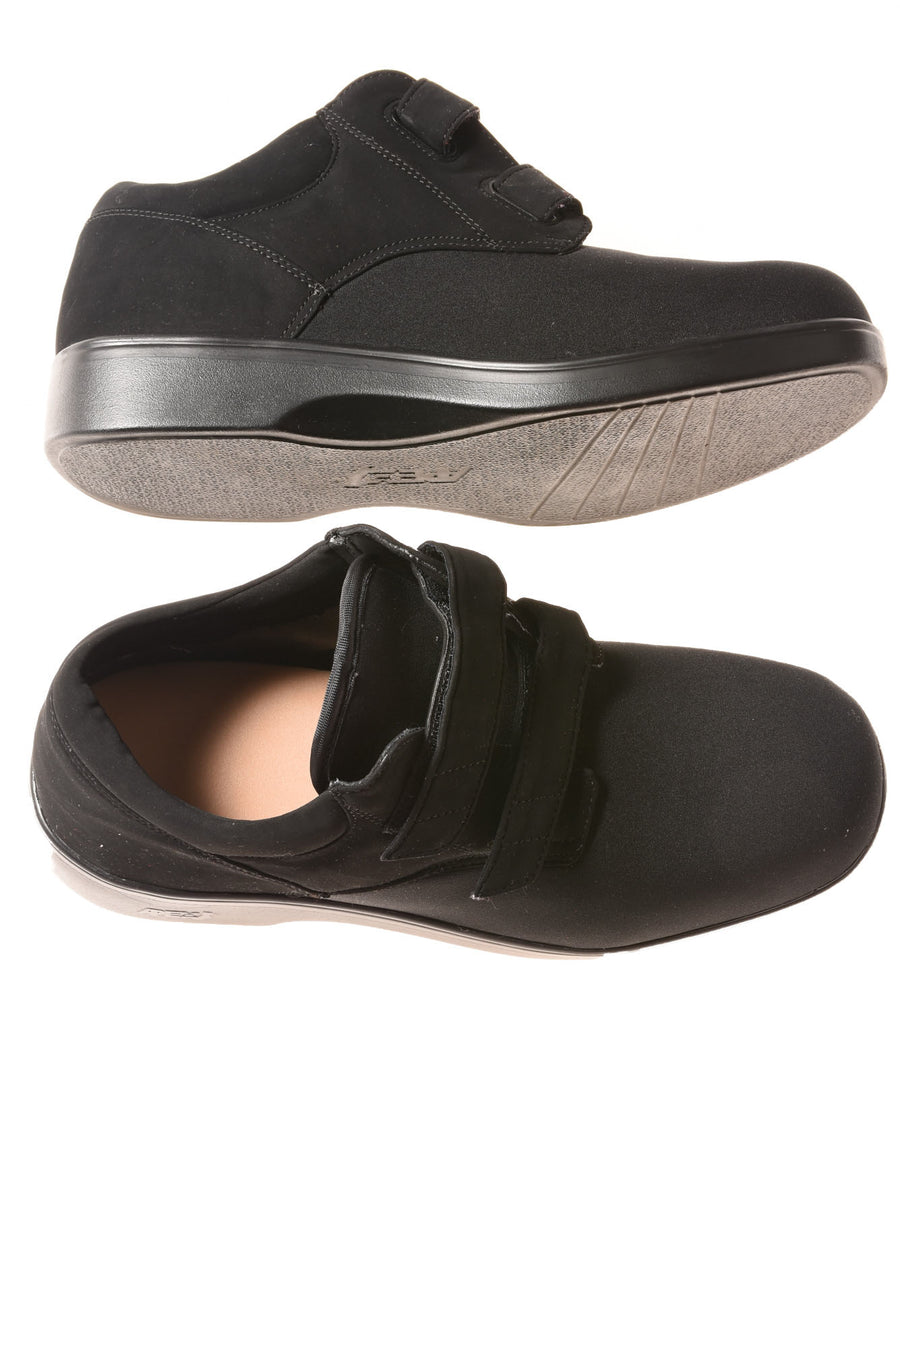 USED No Brand Unisex Shoes 12 Black